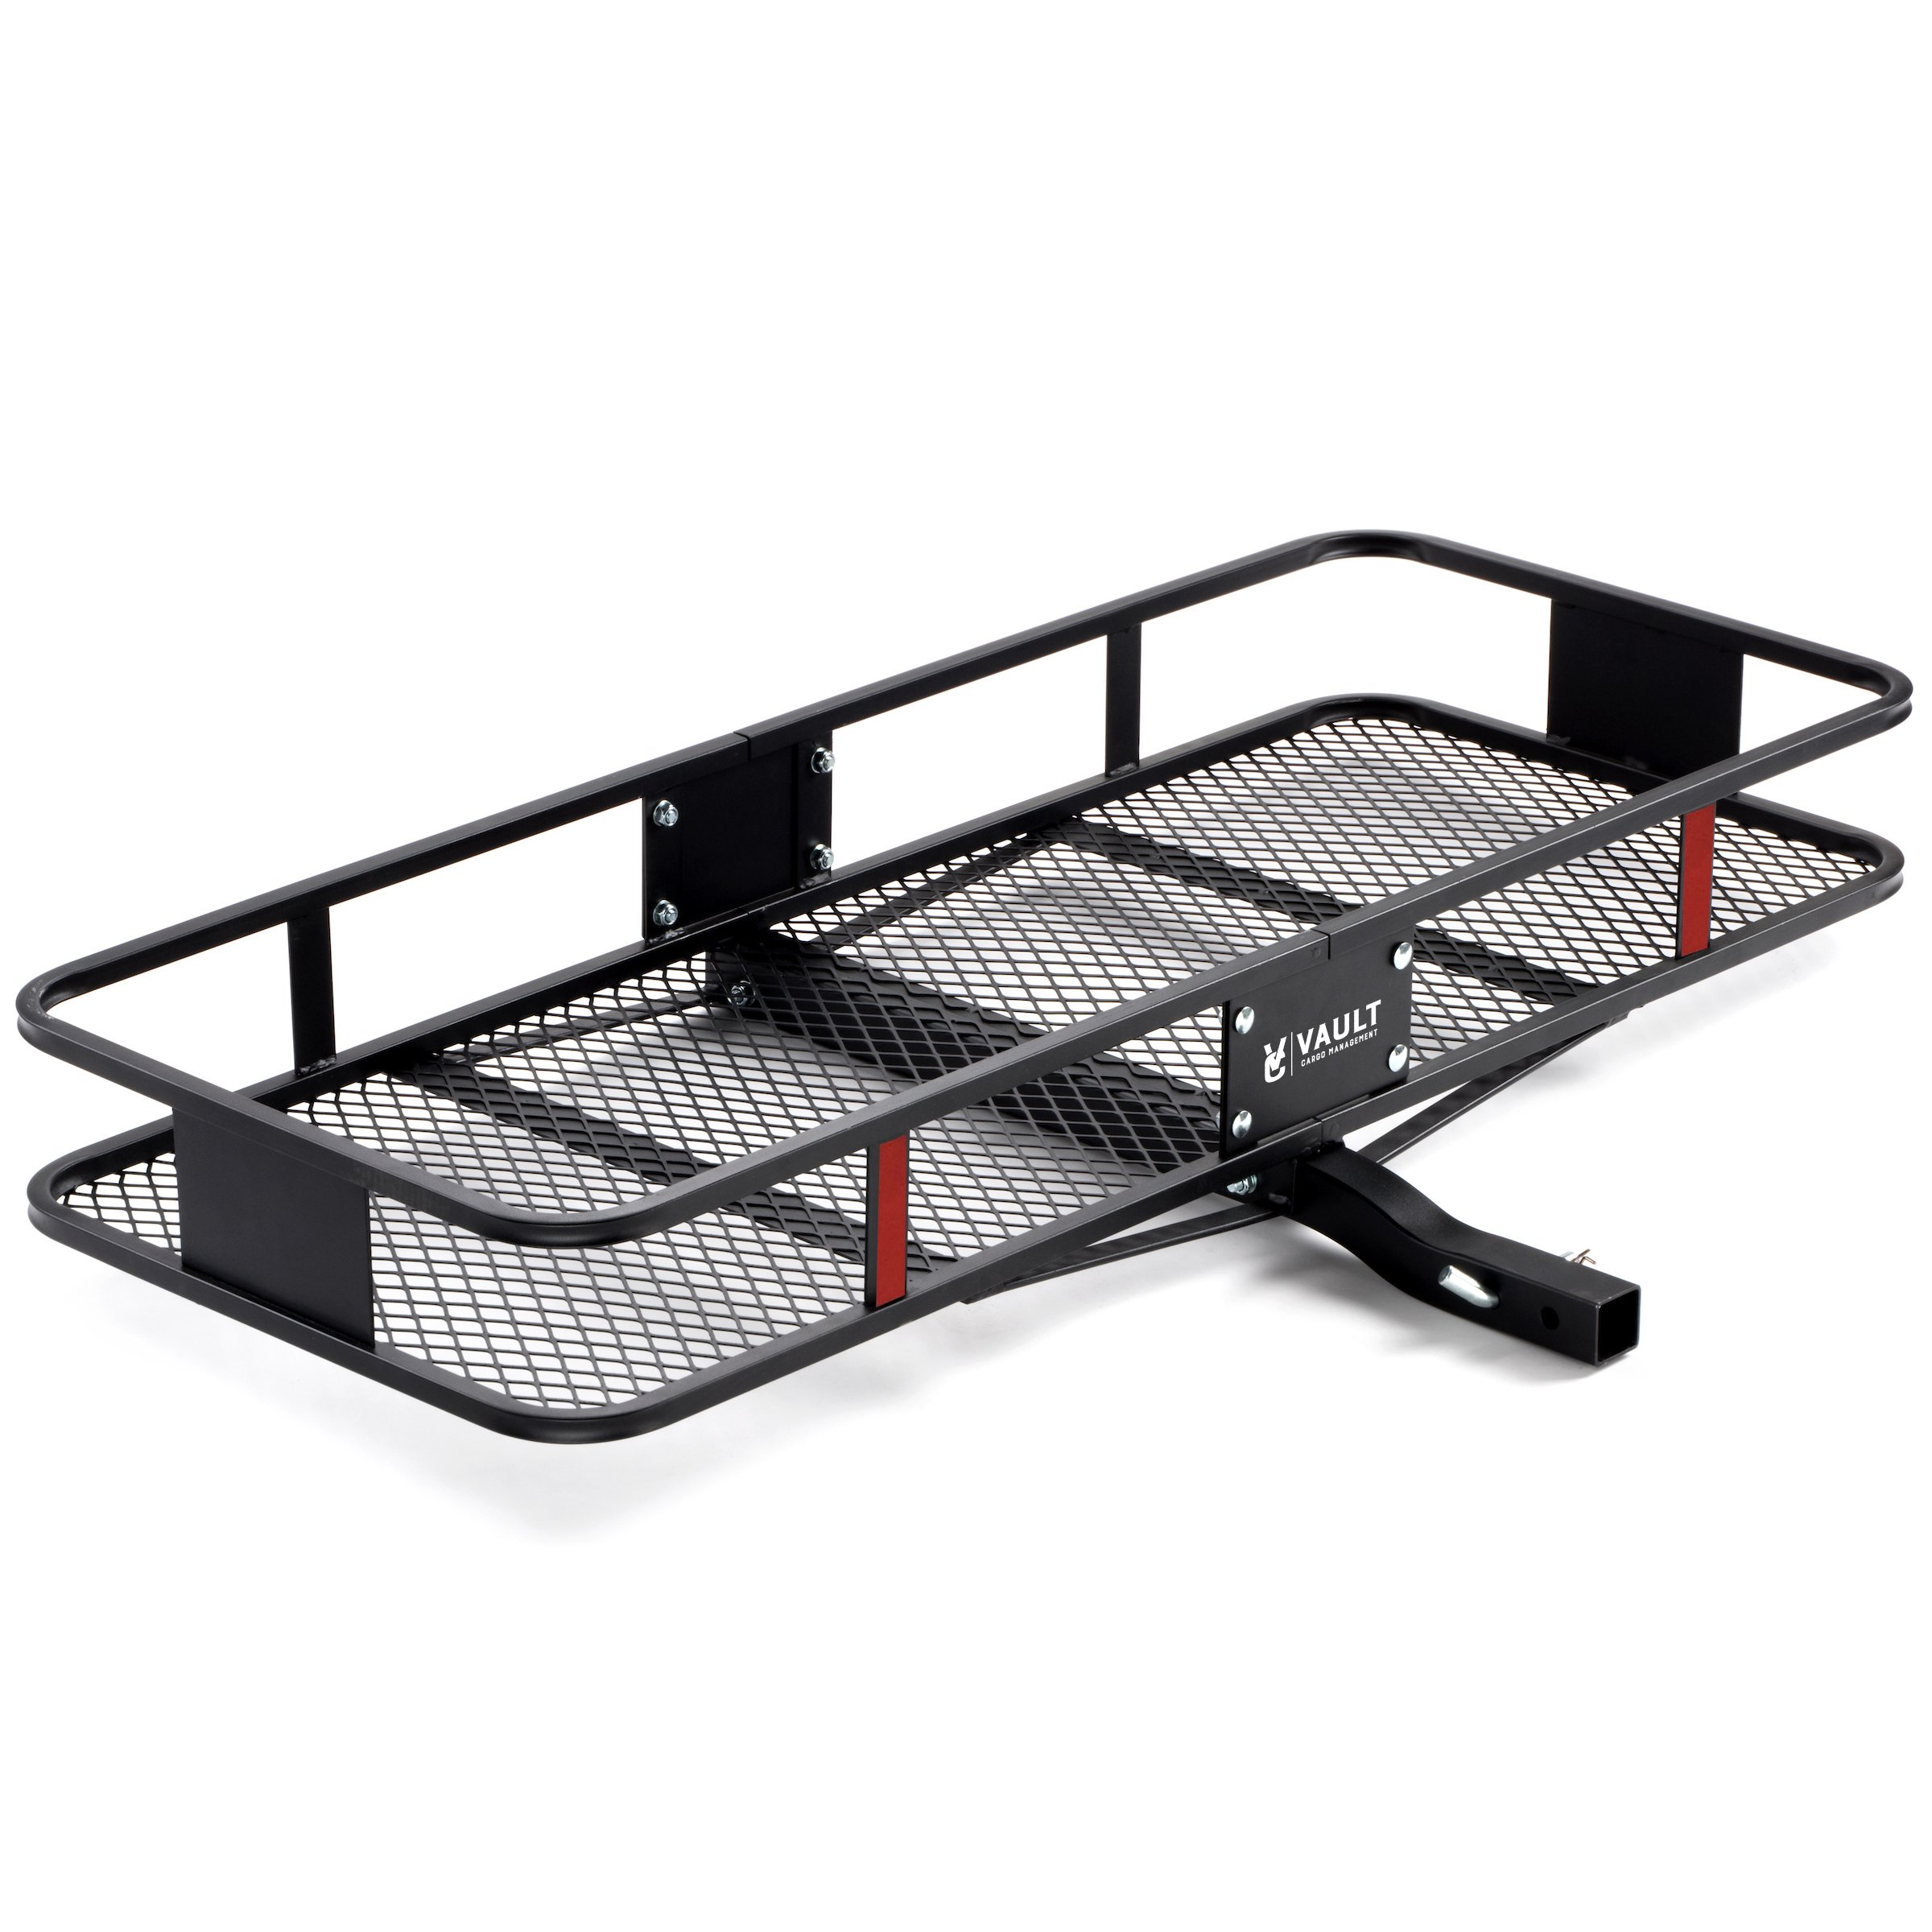 "60"" x 24"" Cargo Hitch Carrier by Vault - Haul Your Cooler & Camping Gear with this Rugged Steel Constructed Storage Rack & Basket for Your Truck or SUV - Easily Mounts to Trailer Towing Hitches by Vault Cargo Management"